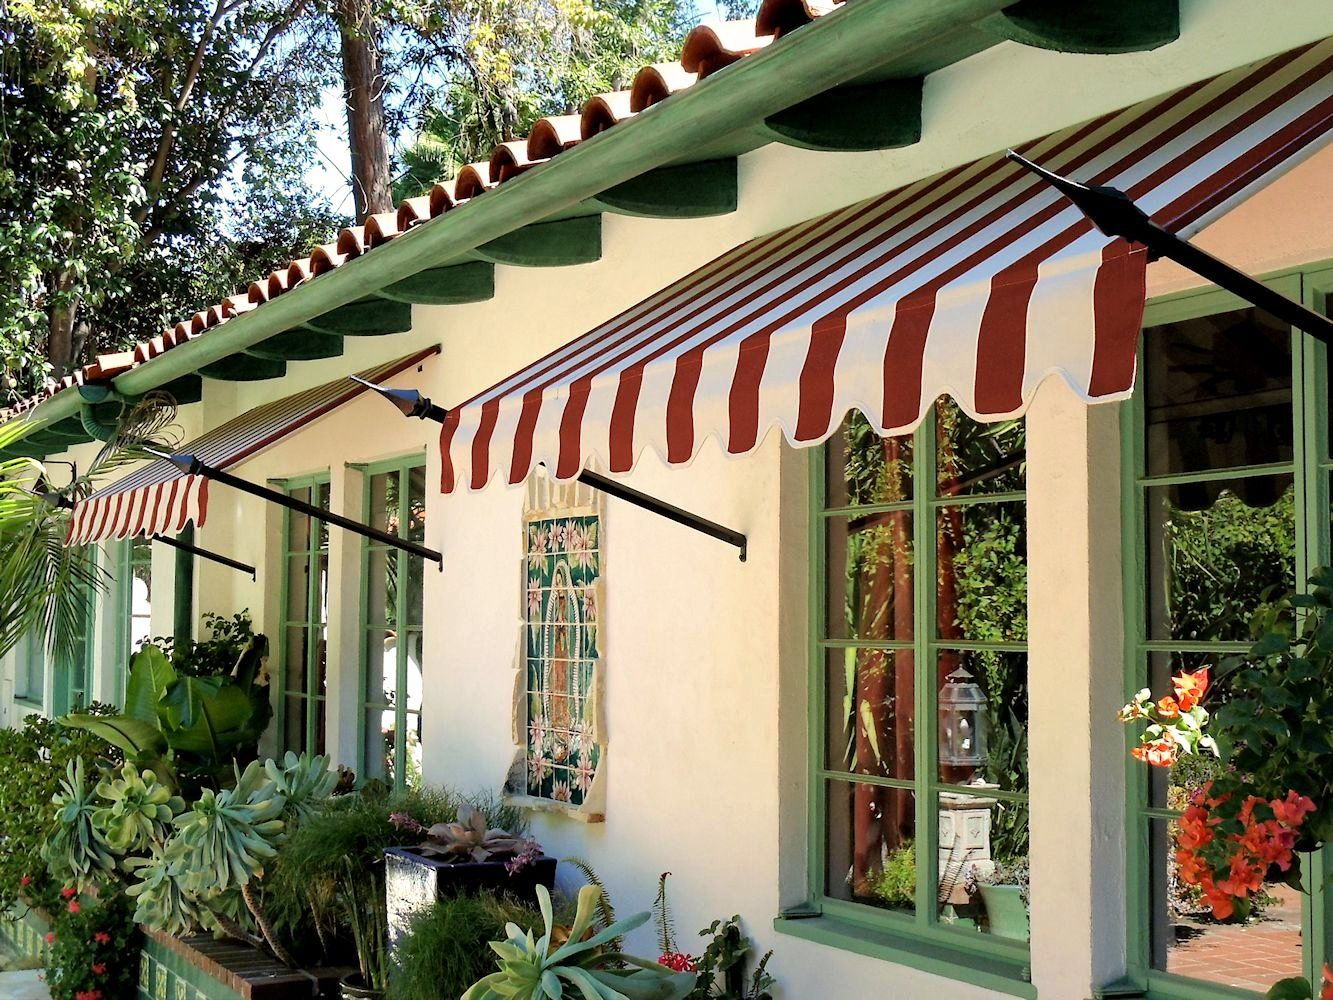 Spear Awnings By Superior Awning In Southern California